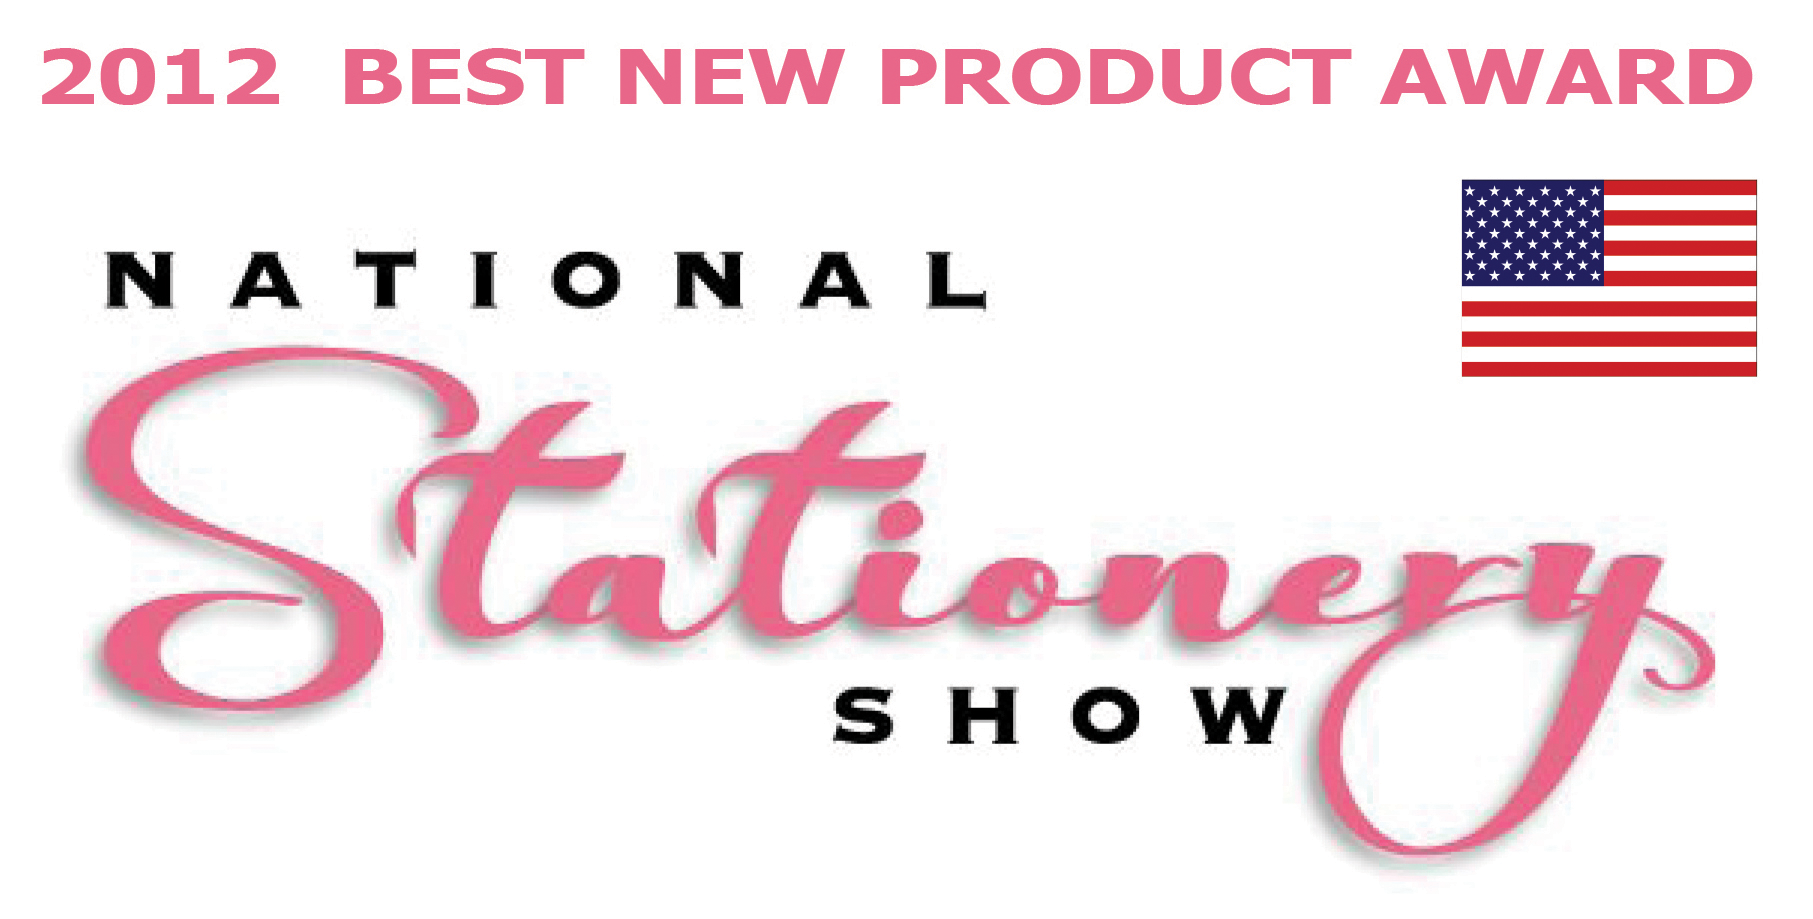 USA Best New Product Stationery Award